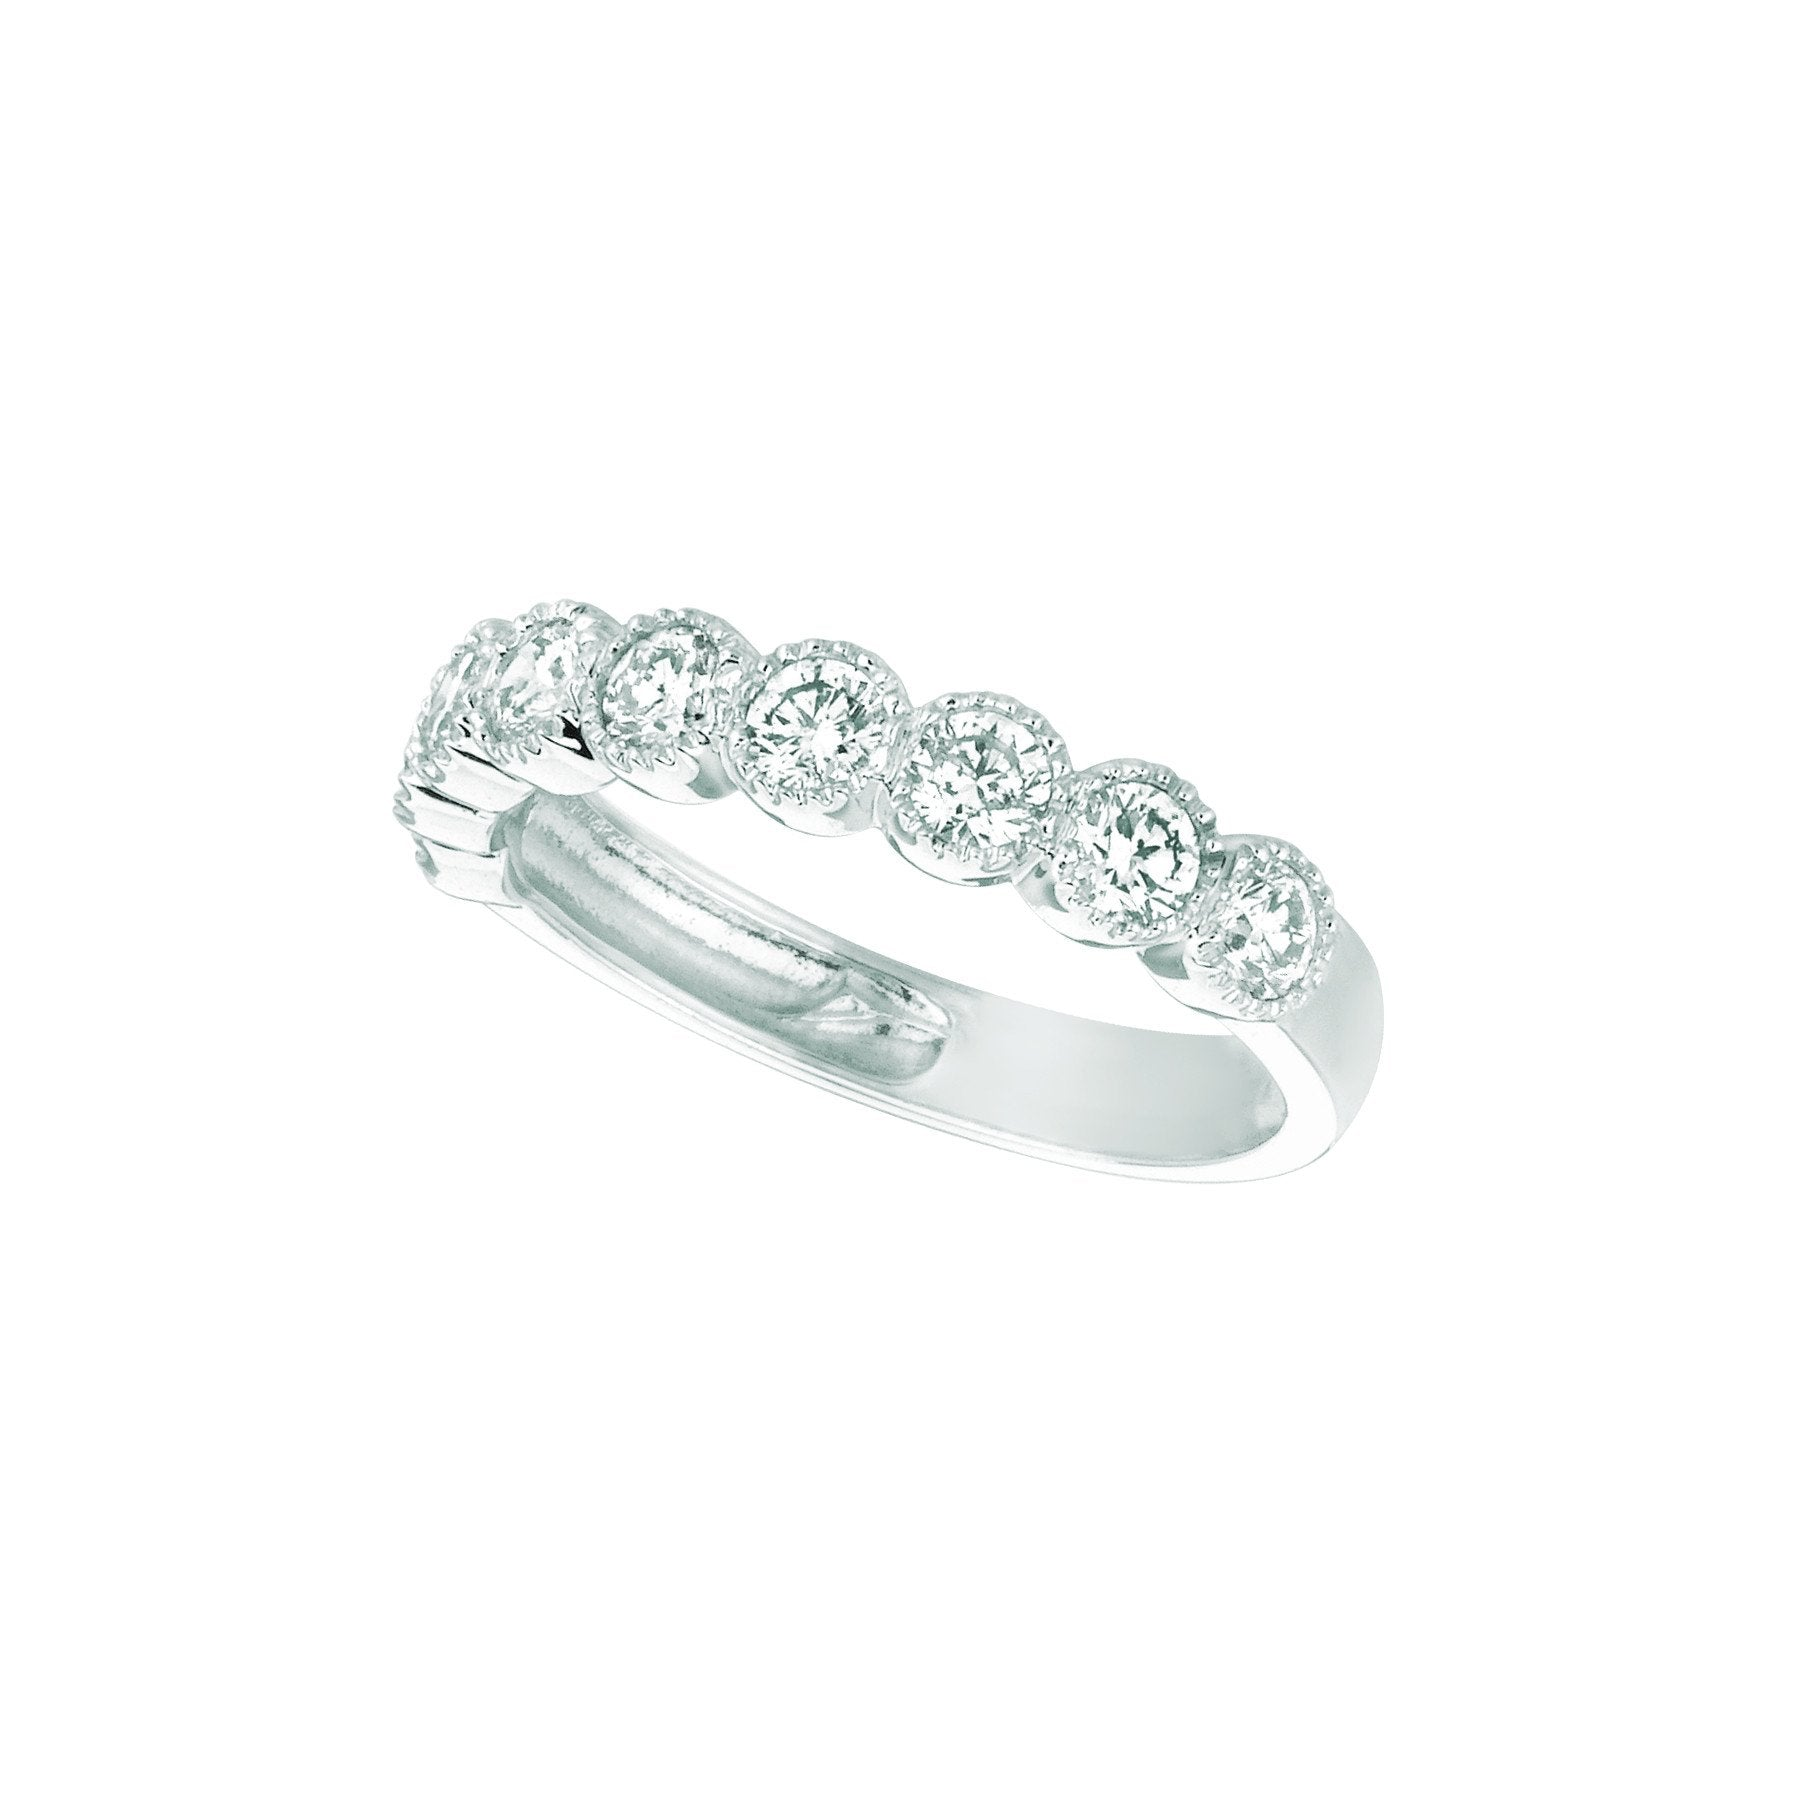 Diamond Half Eternity Band Ring 1.01 Carats 14K White Half Eternity Band